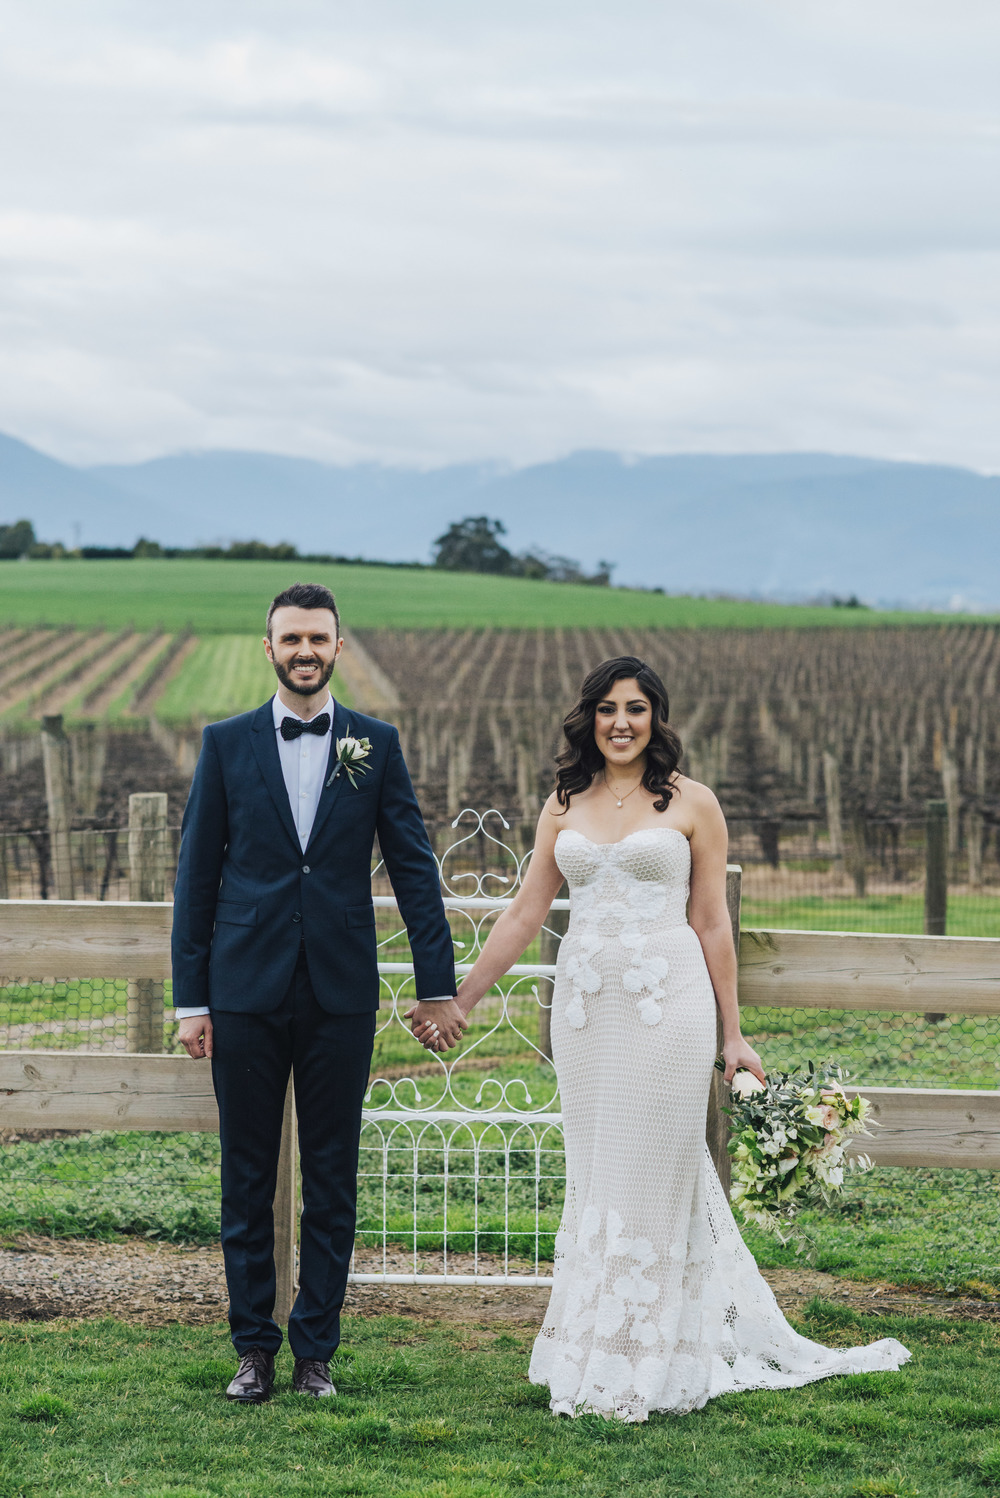 the-white-tree-photography-zonzo-estate-yarra-valley-australian-wedding-rustic-chic-wedding-59